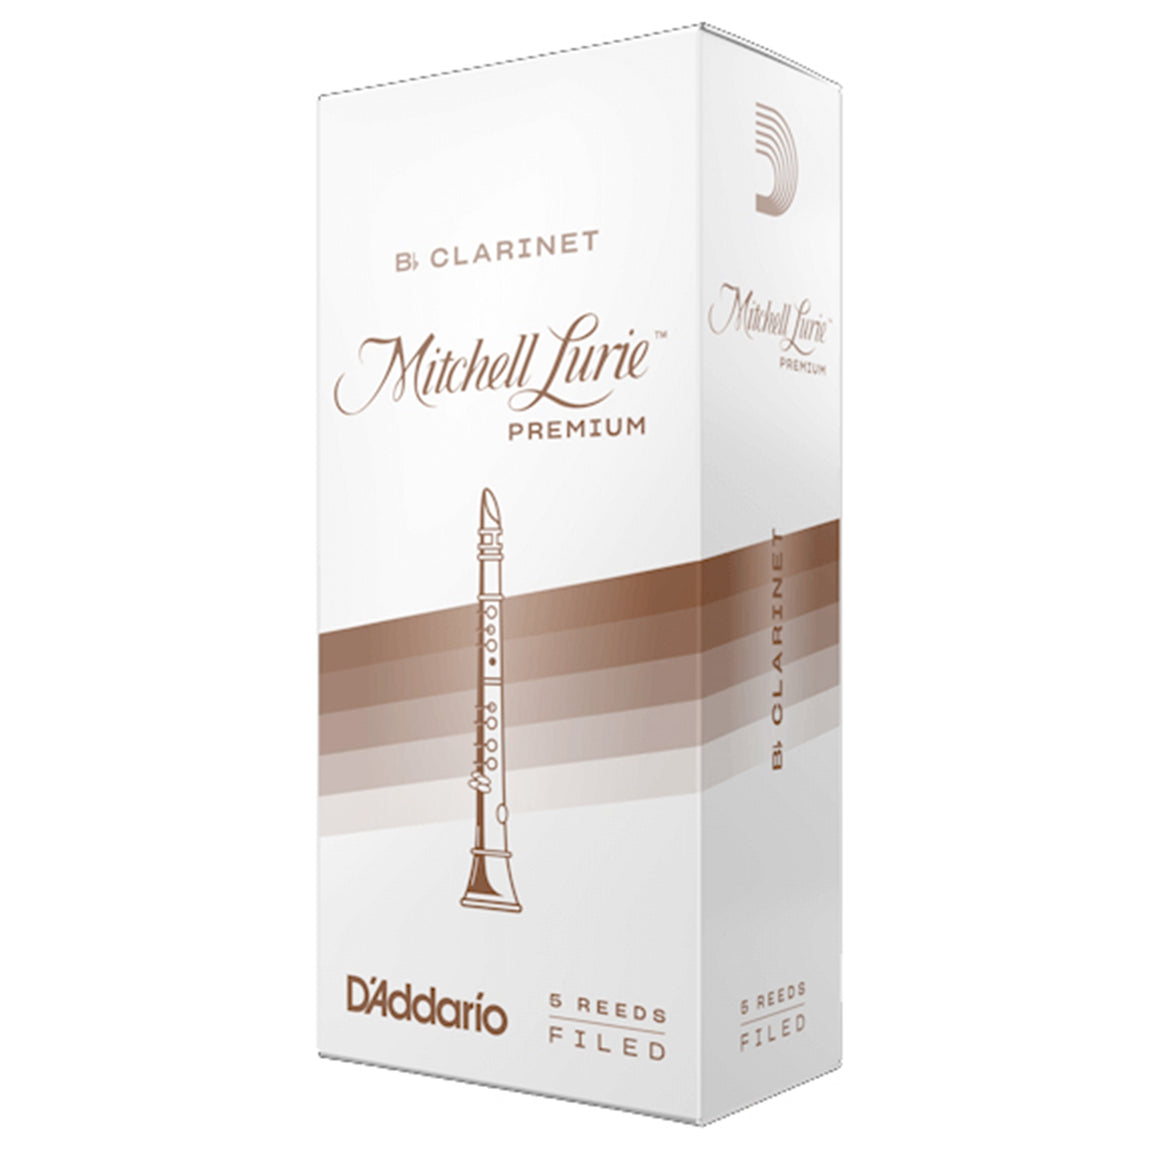 MITCHELL LURIE RMLP5BCL35 #3.5 Clarinet Reeds, Box of 5